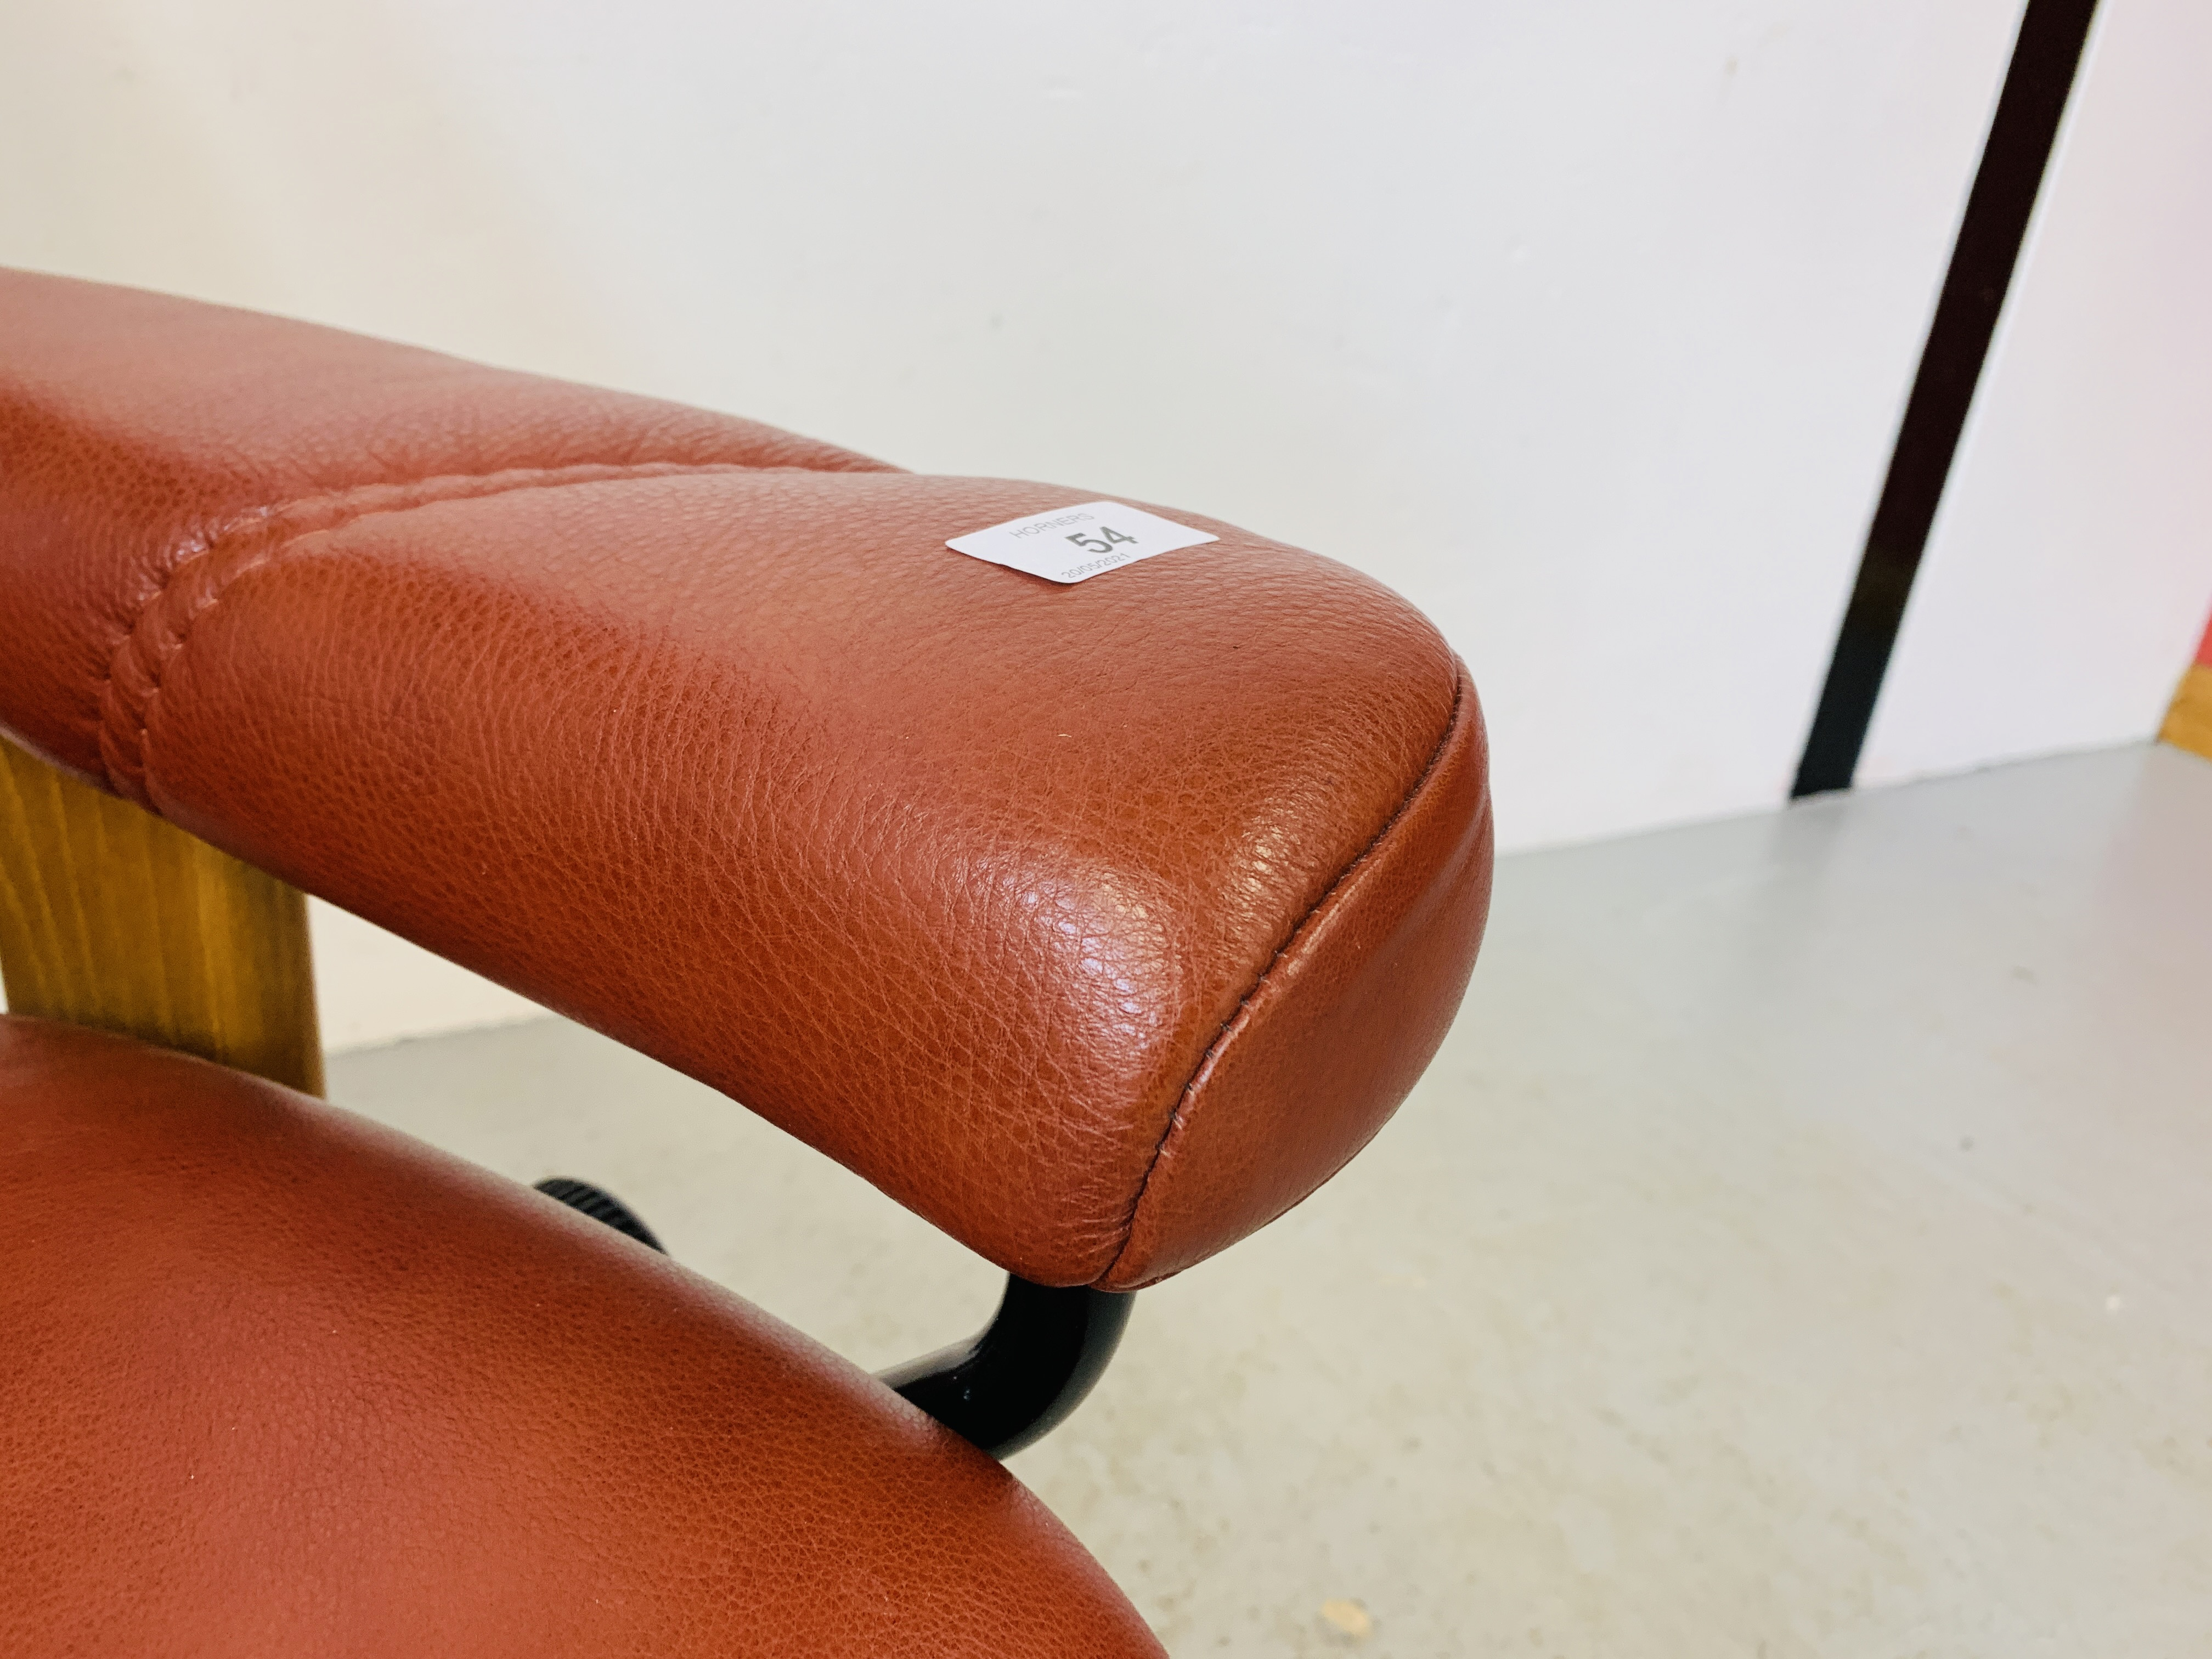 A STRESSLESS TAN LEATHER RELAXER CHAIR - Image 9 of 12